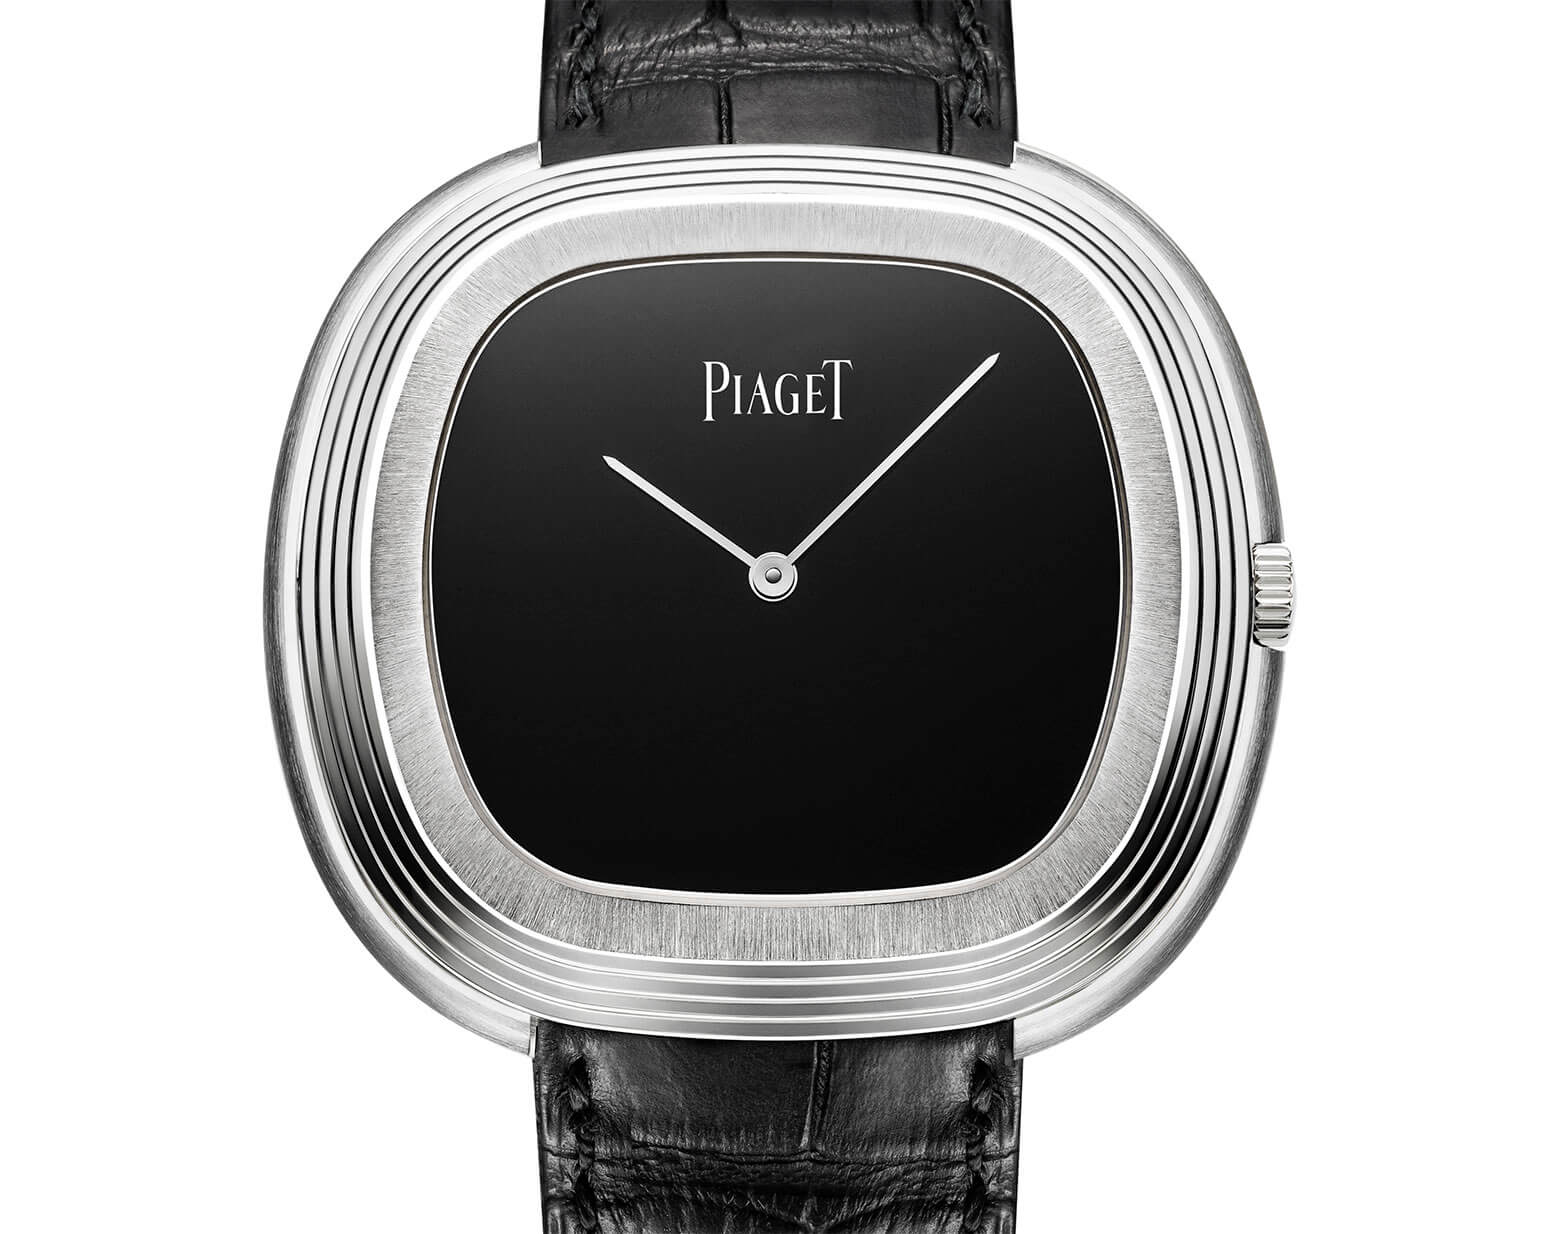 168fffcc6de2 Piaget Black Tie inspiration vintage – FHH Journal